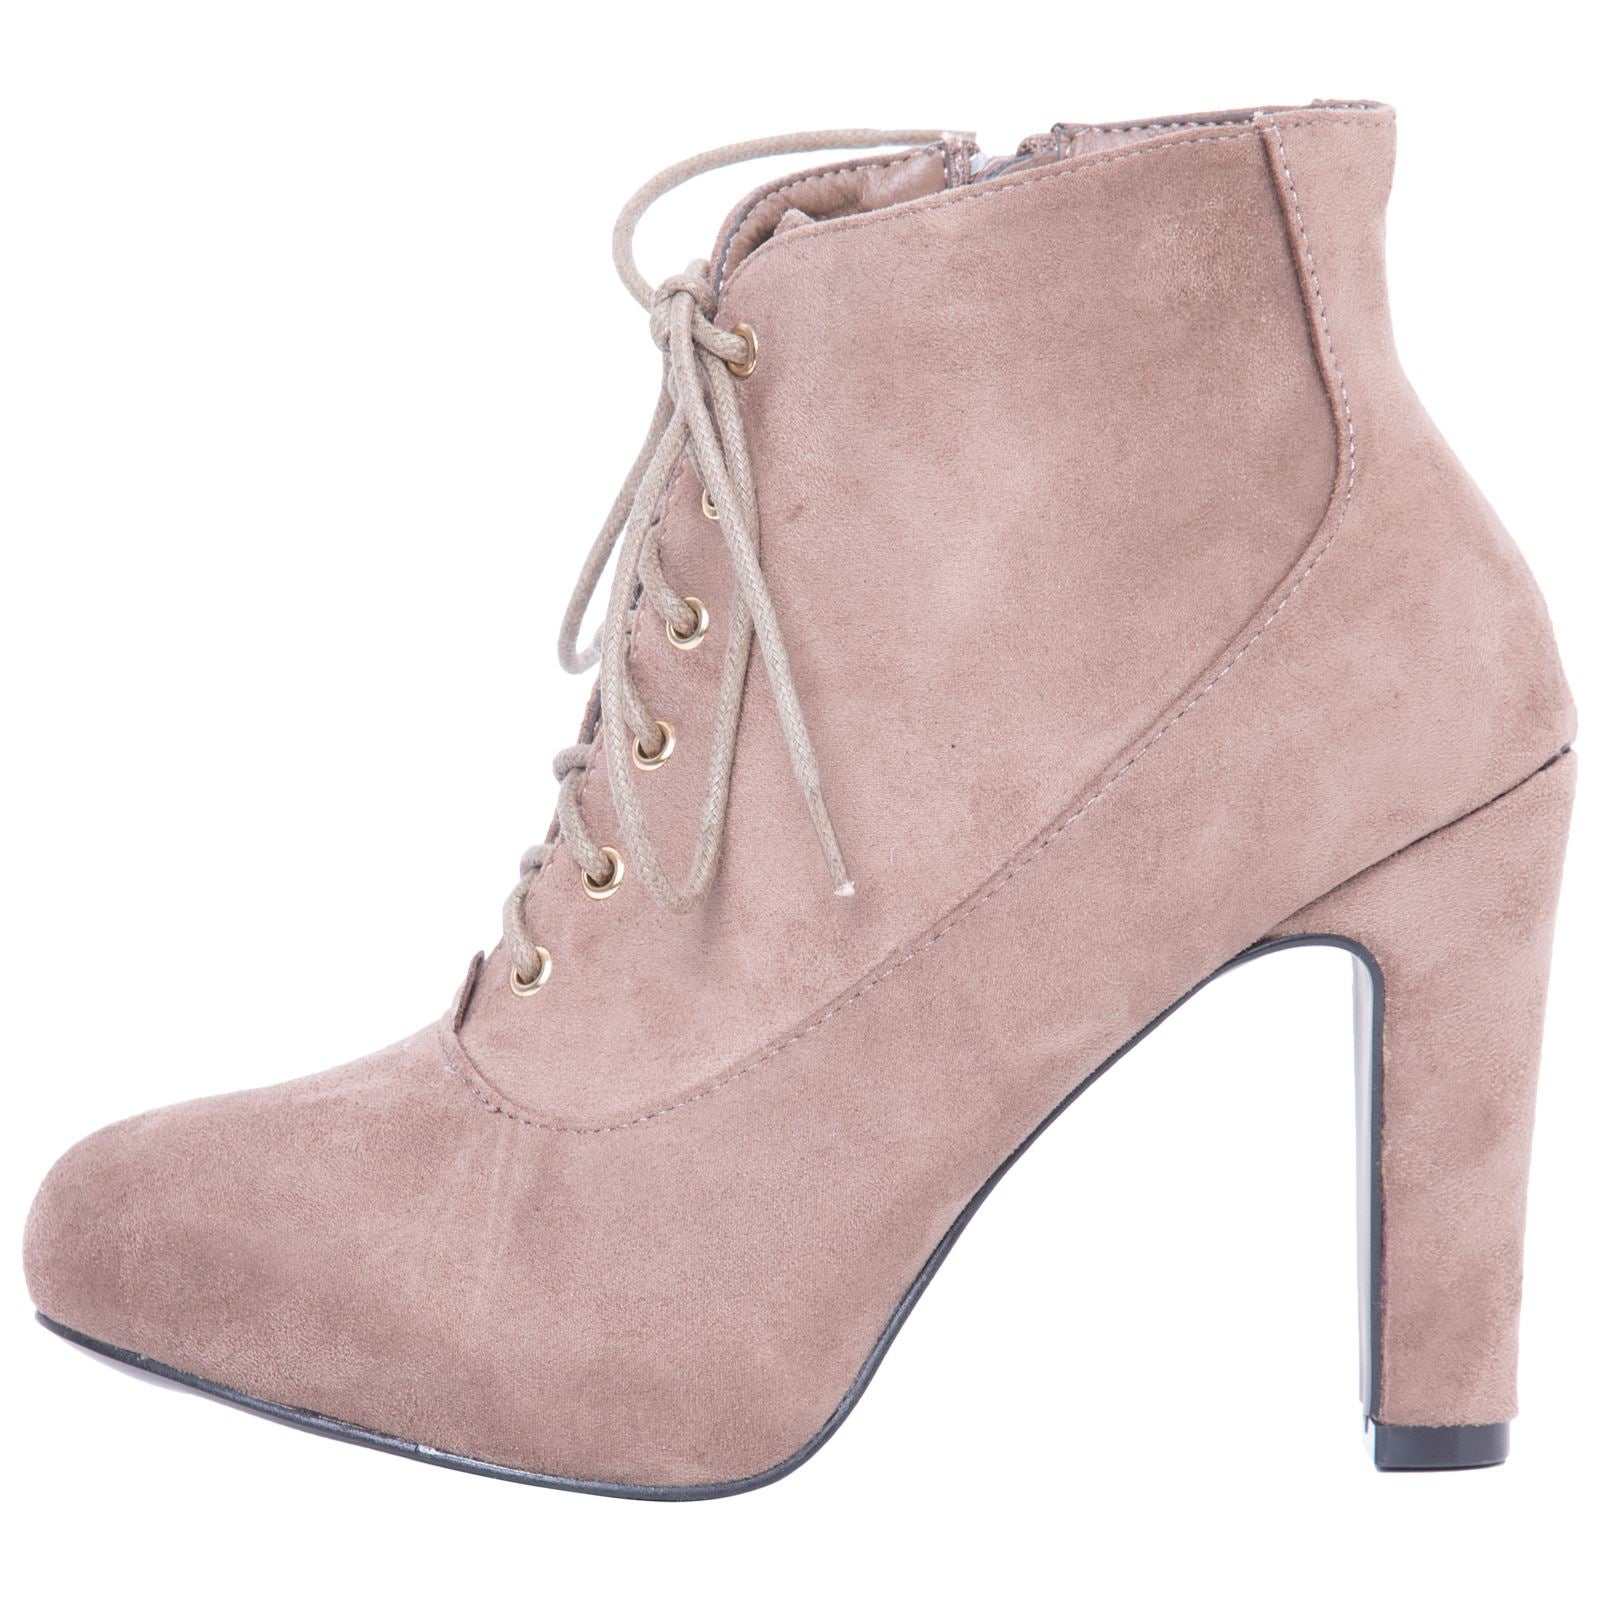 Genevieve Pointed Toe Ankle Boots in Khaki with Block Heel